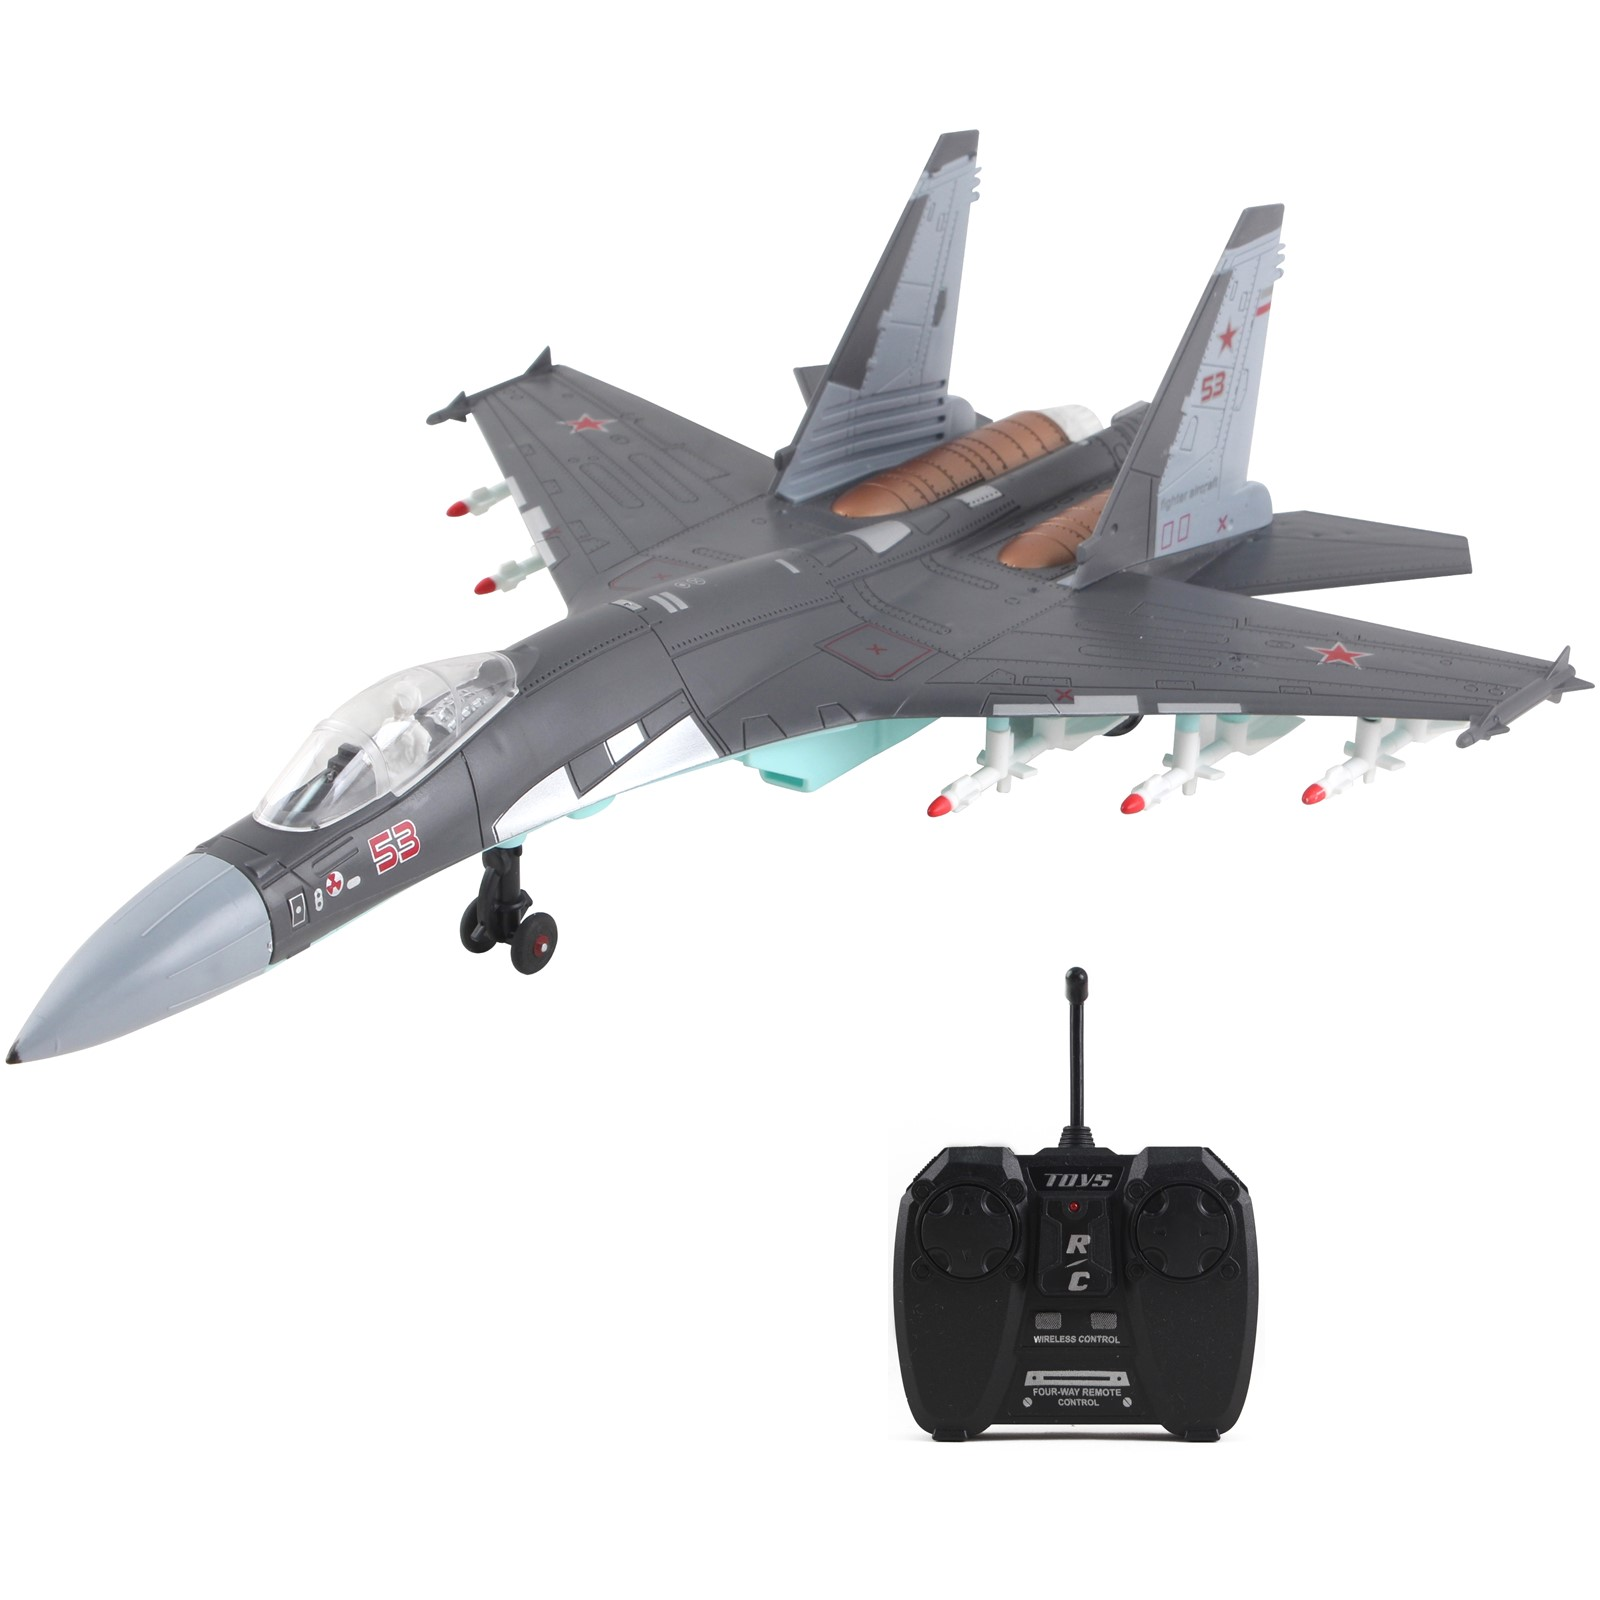 Vokodo RC Military Fighter Jet 18 Inch Stealth Bomber Non-Flying Air Force Army Toys Remote Control Airplane Realistic Pretend Play Kids Action Aircraft Plane Great Gift For Children Boys Girls (Gray)